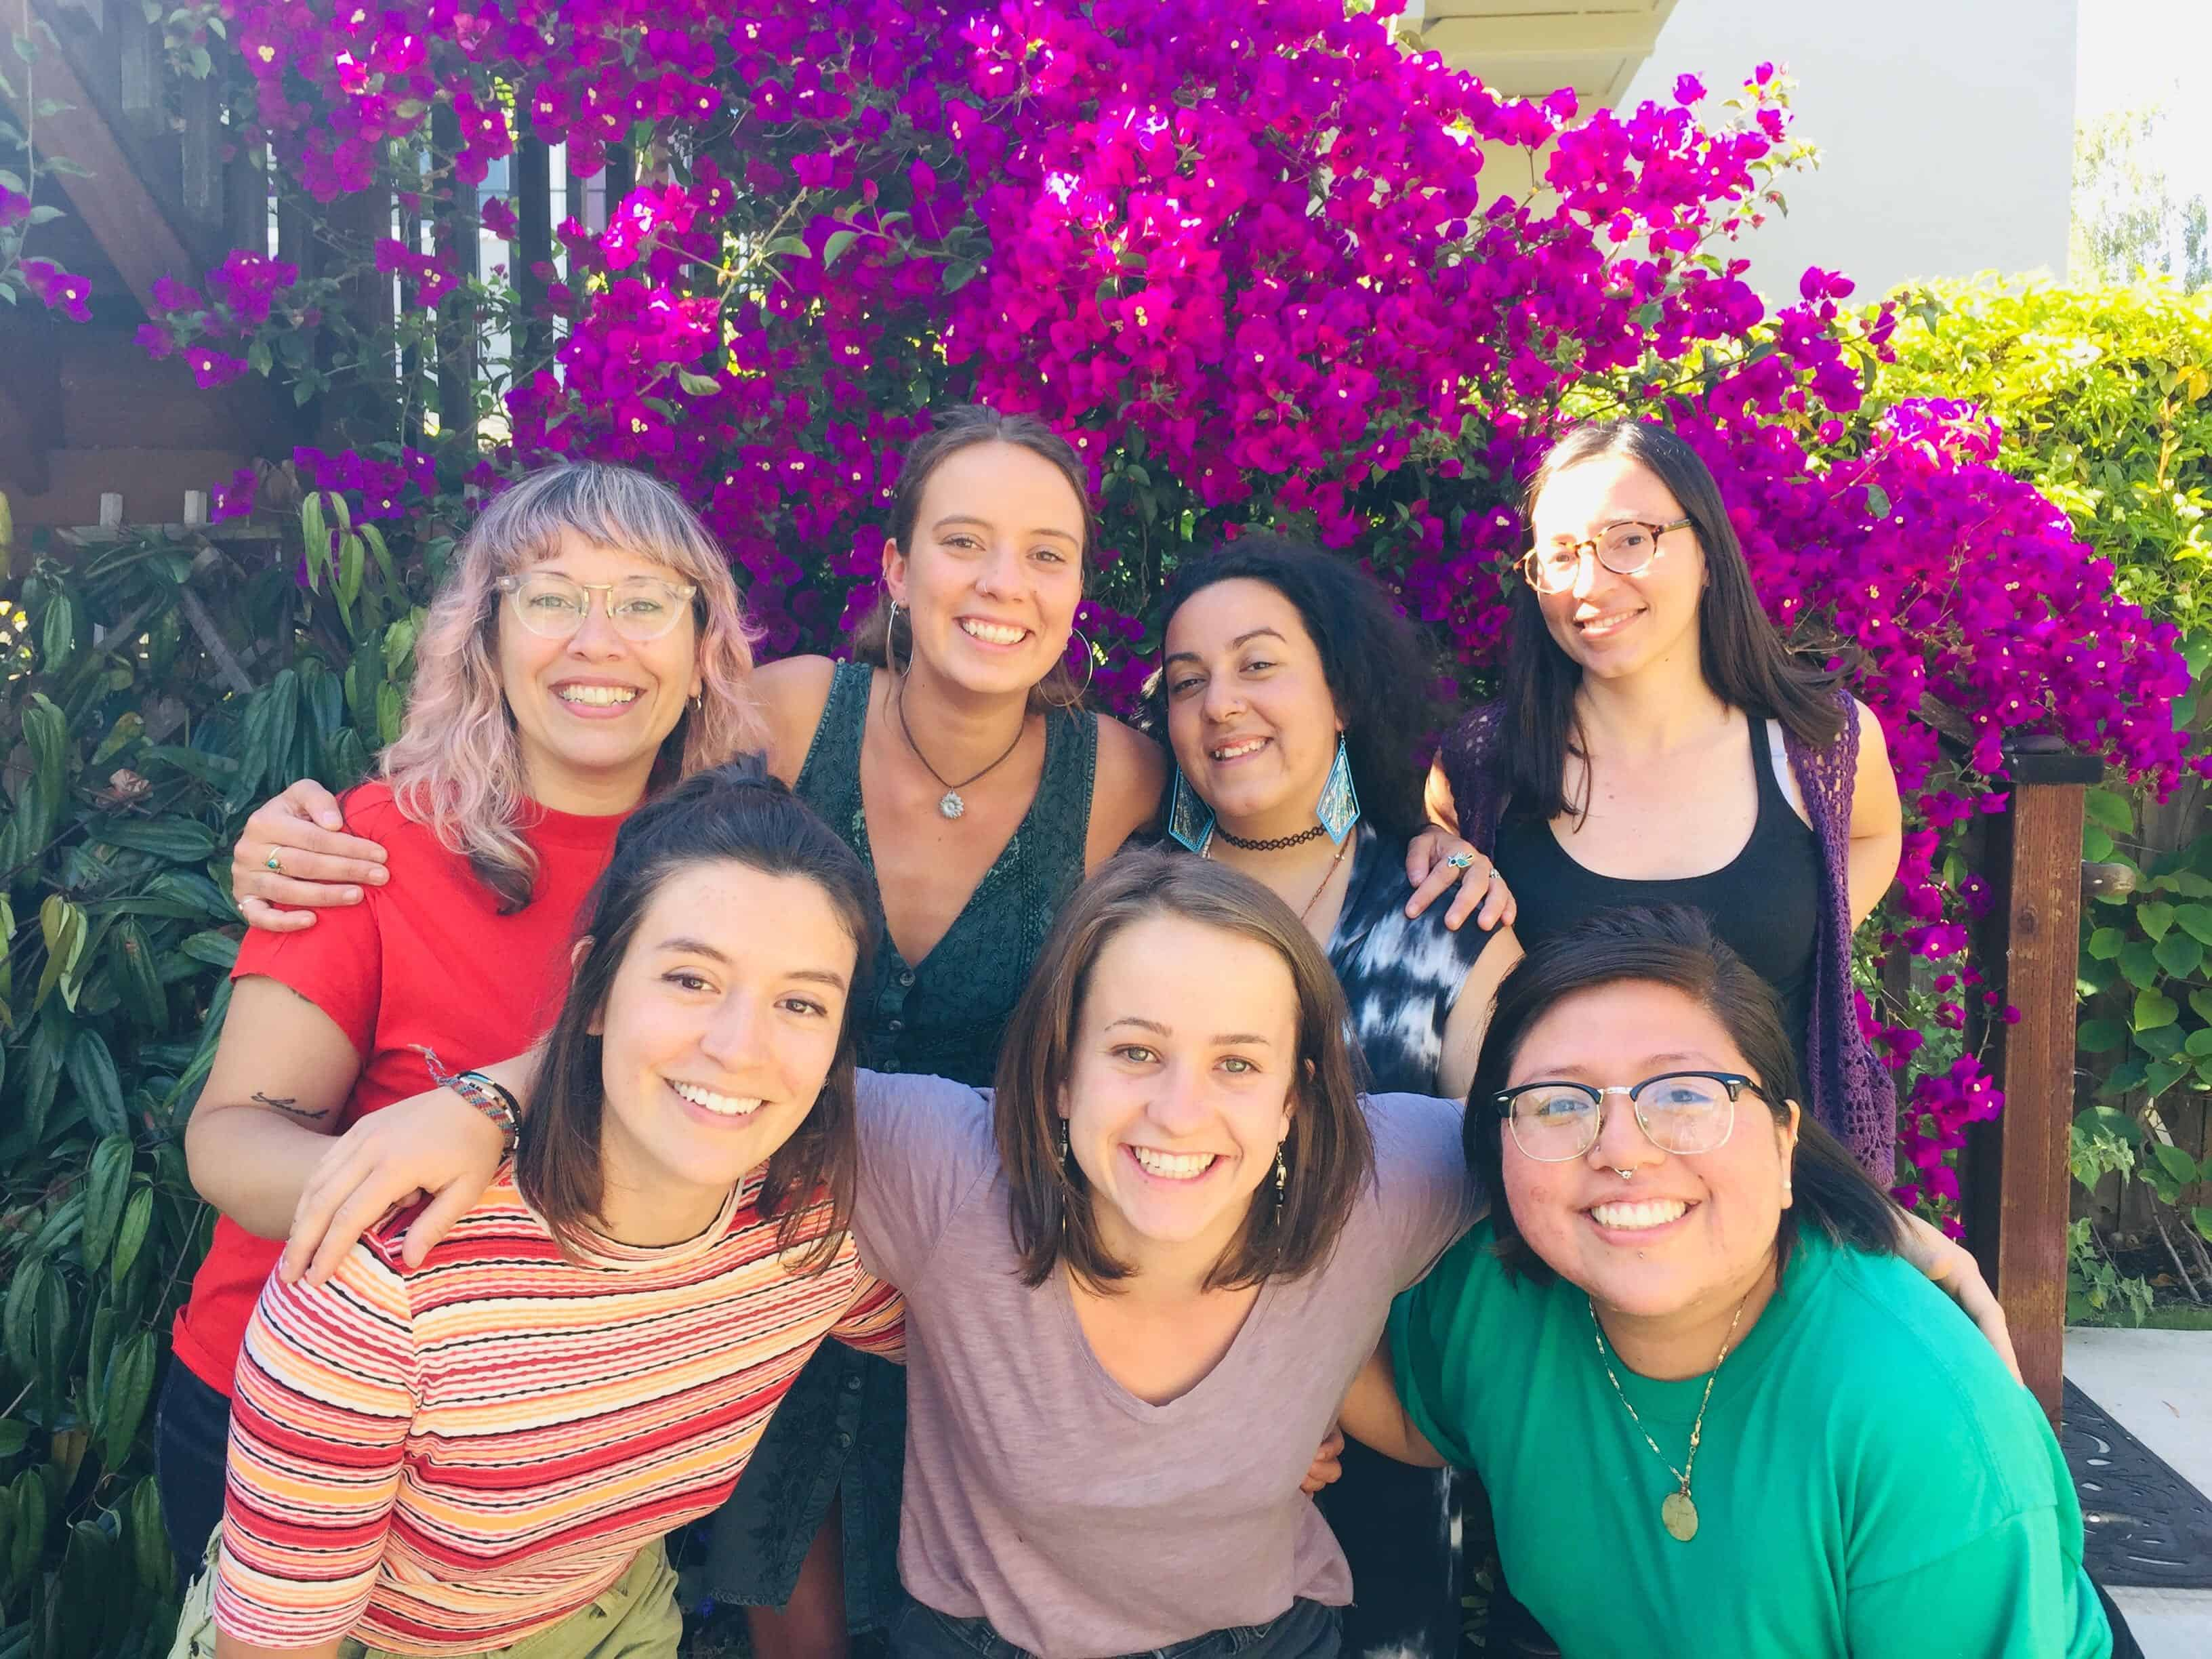 A photograph of 7 smiling people of color in front of a blooming tree.